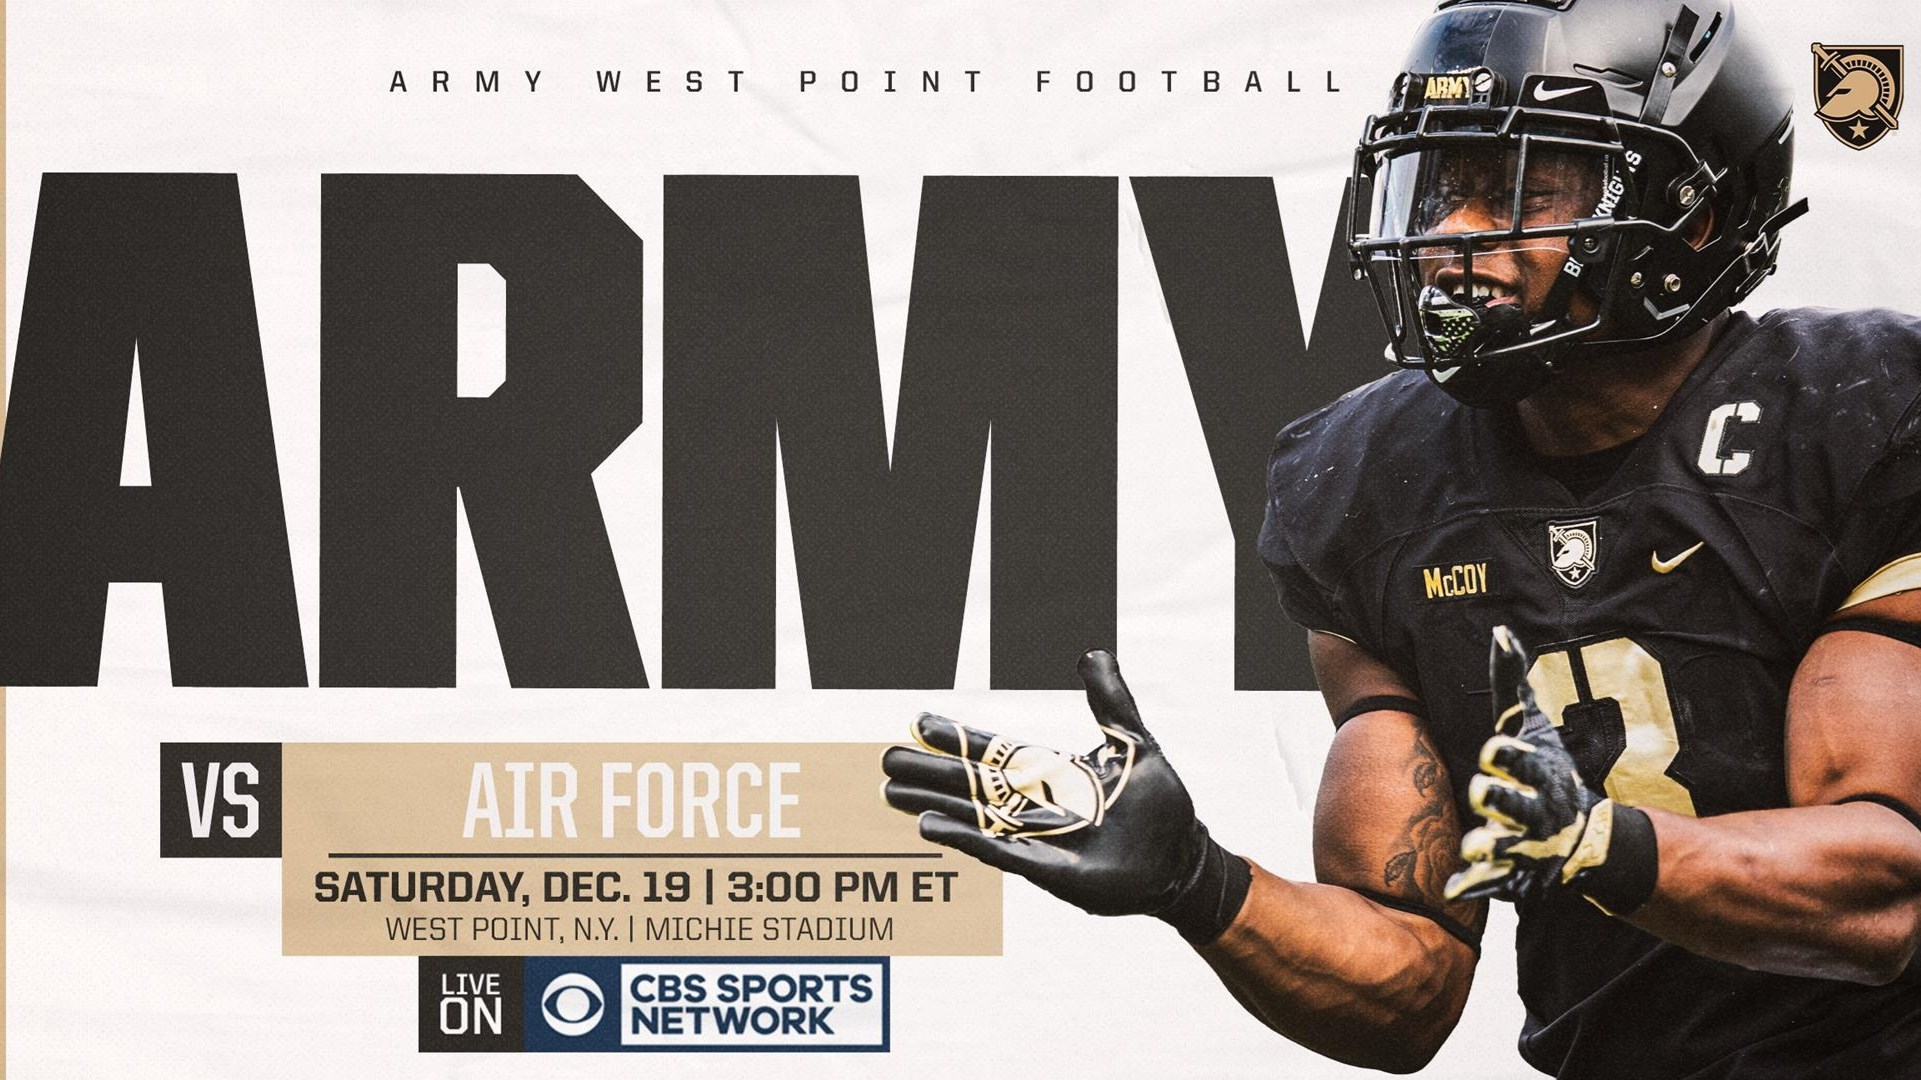 Army Air Force Rescheduled For Dec 19 Army West Point